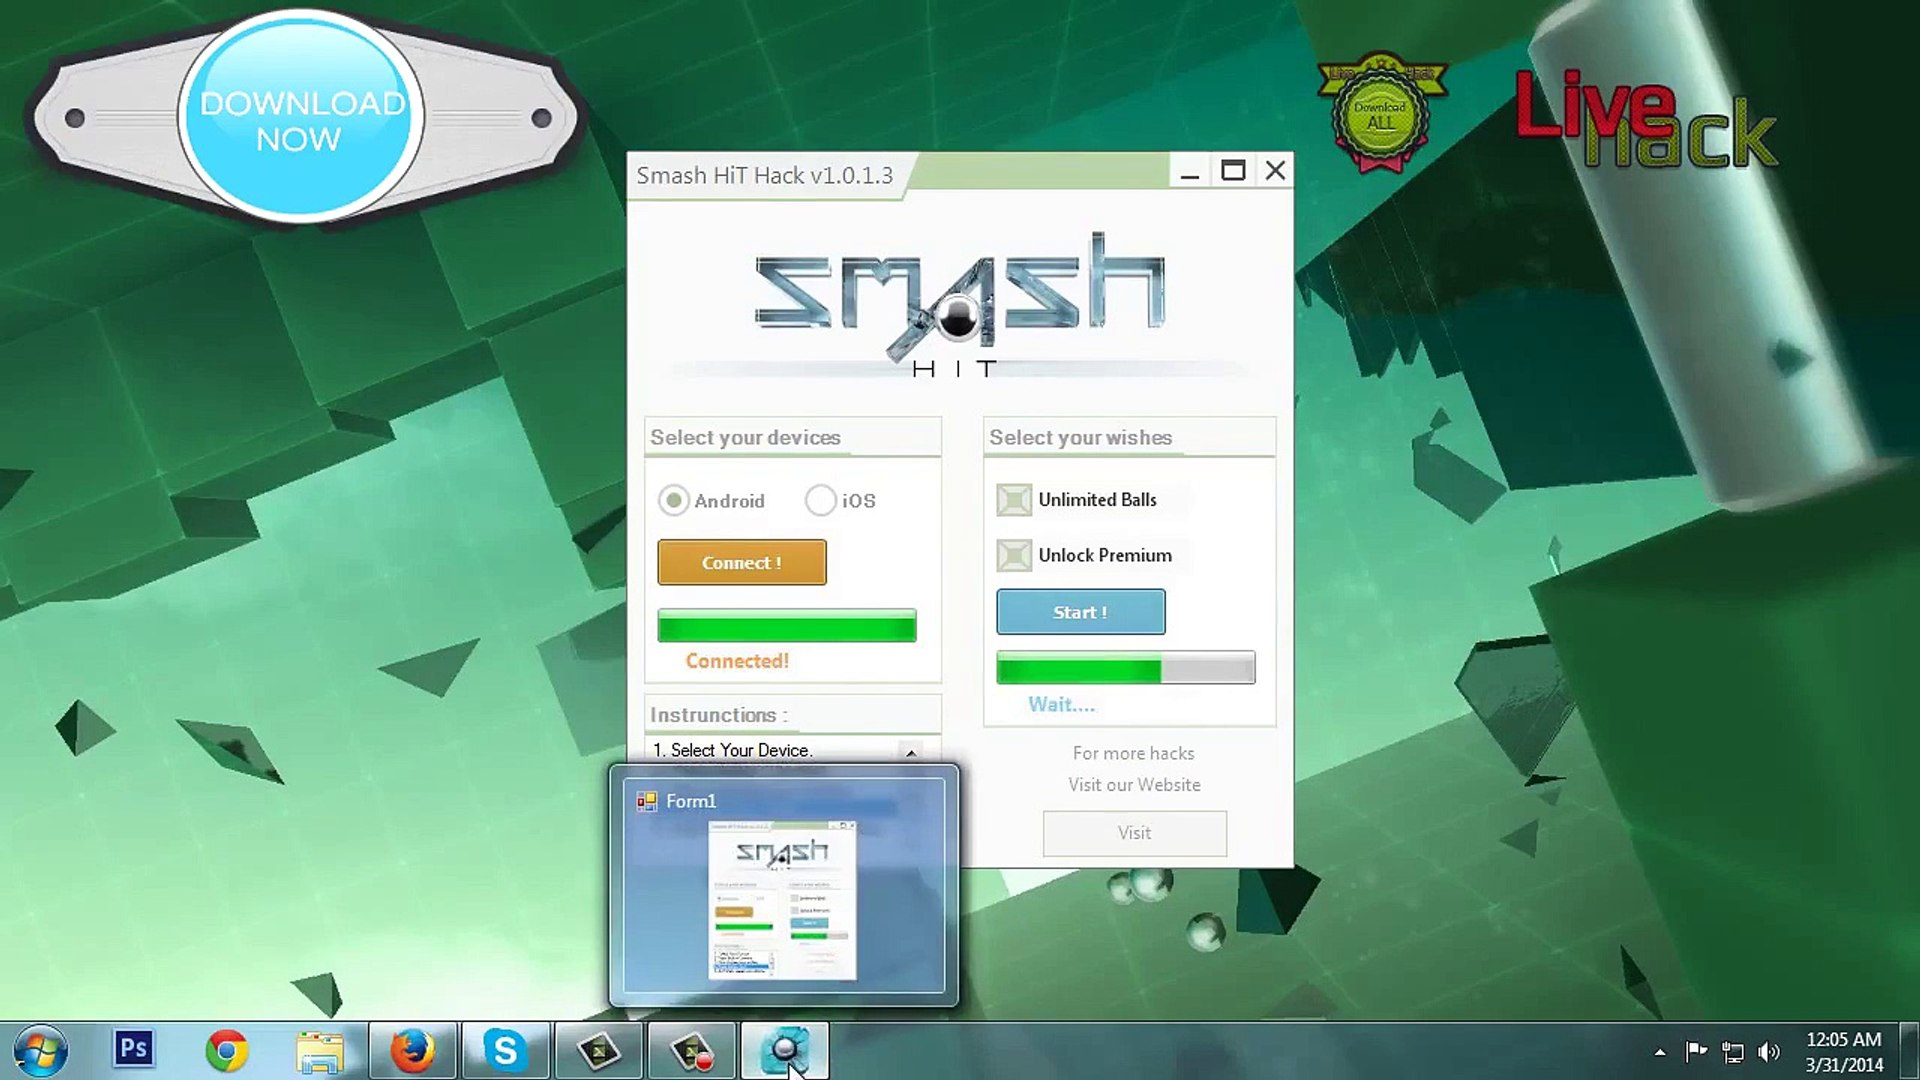 Smash Hit [Premium][Hack][unlimited][balls][how to get for free  ifunbox][android][iphone][ifile][no jailbreak][download & ios][purchases  cydia][-- (android ios) tool cheat apk]